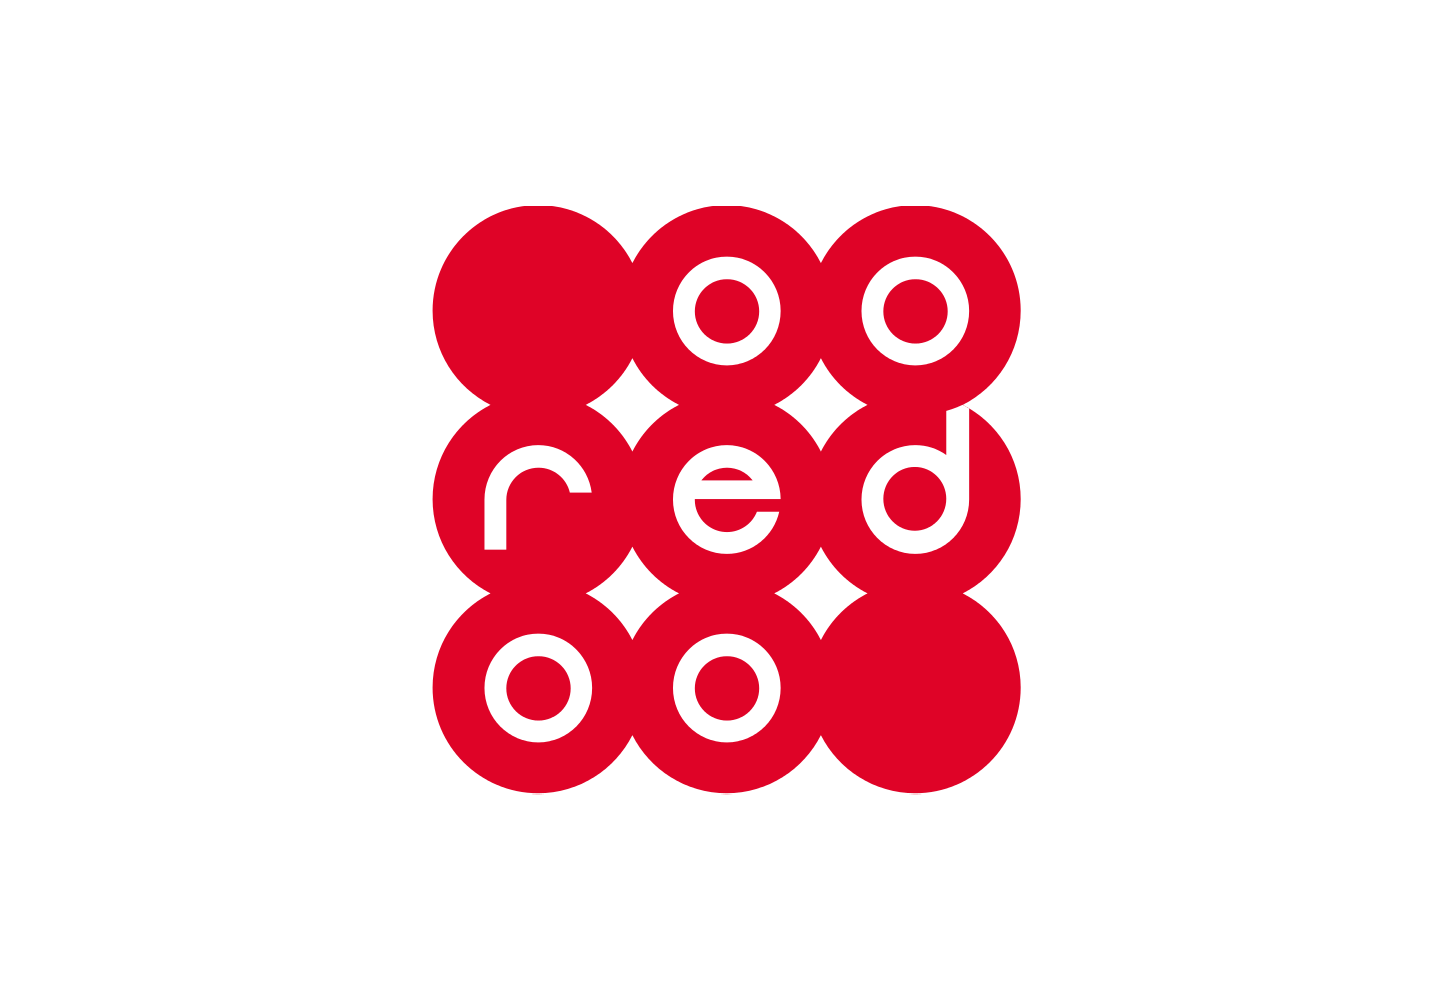 Ooredoo Data Q10